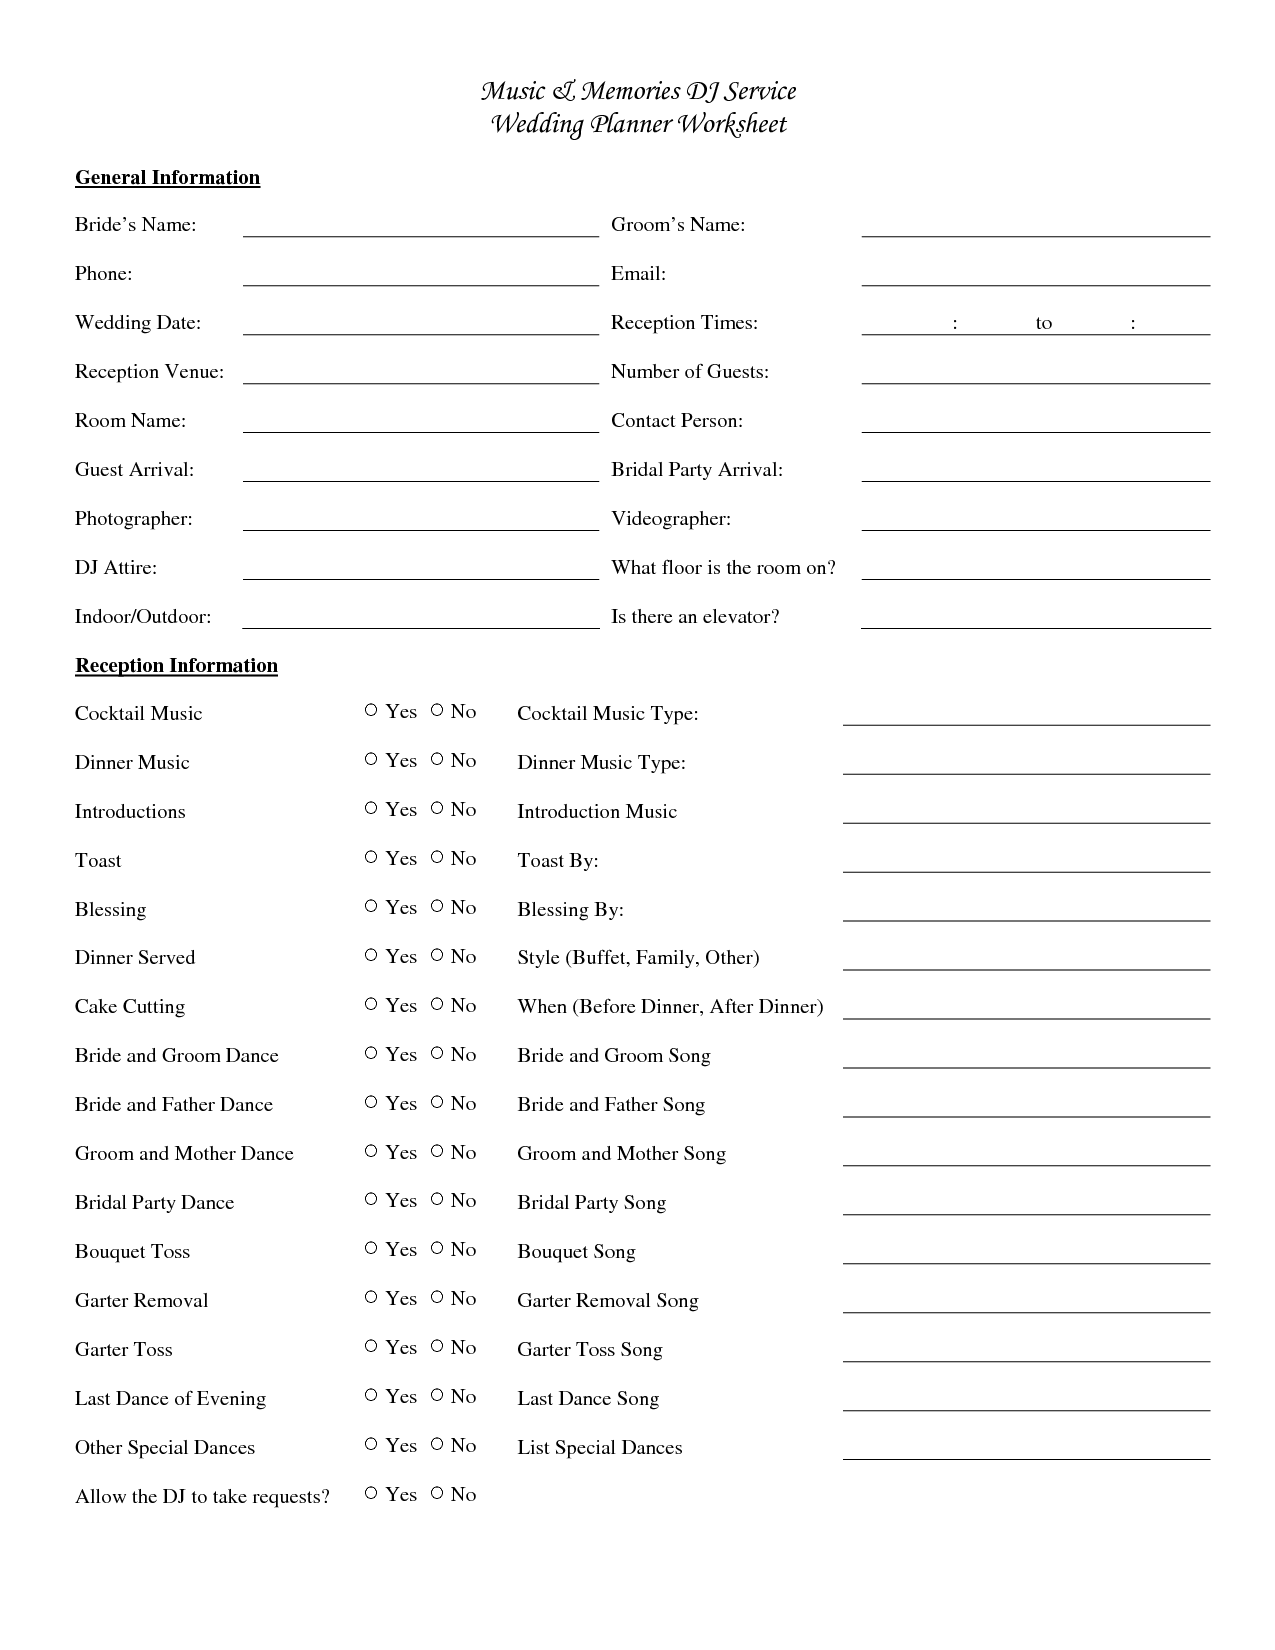 worksheet Dance Worksheets wedding dj checklist music memories service planner worksheet yes no yes